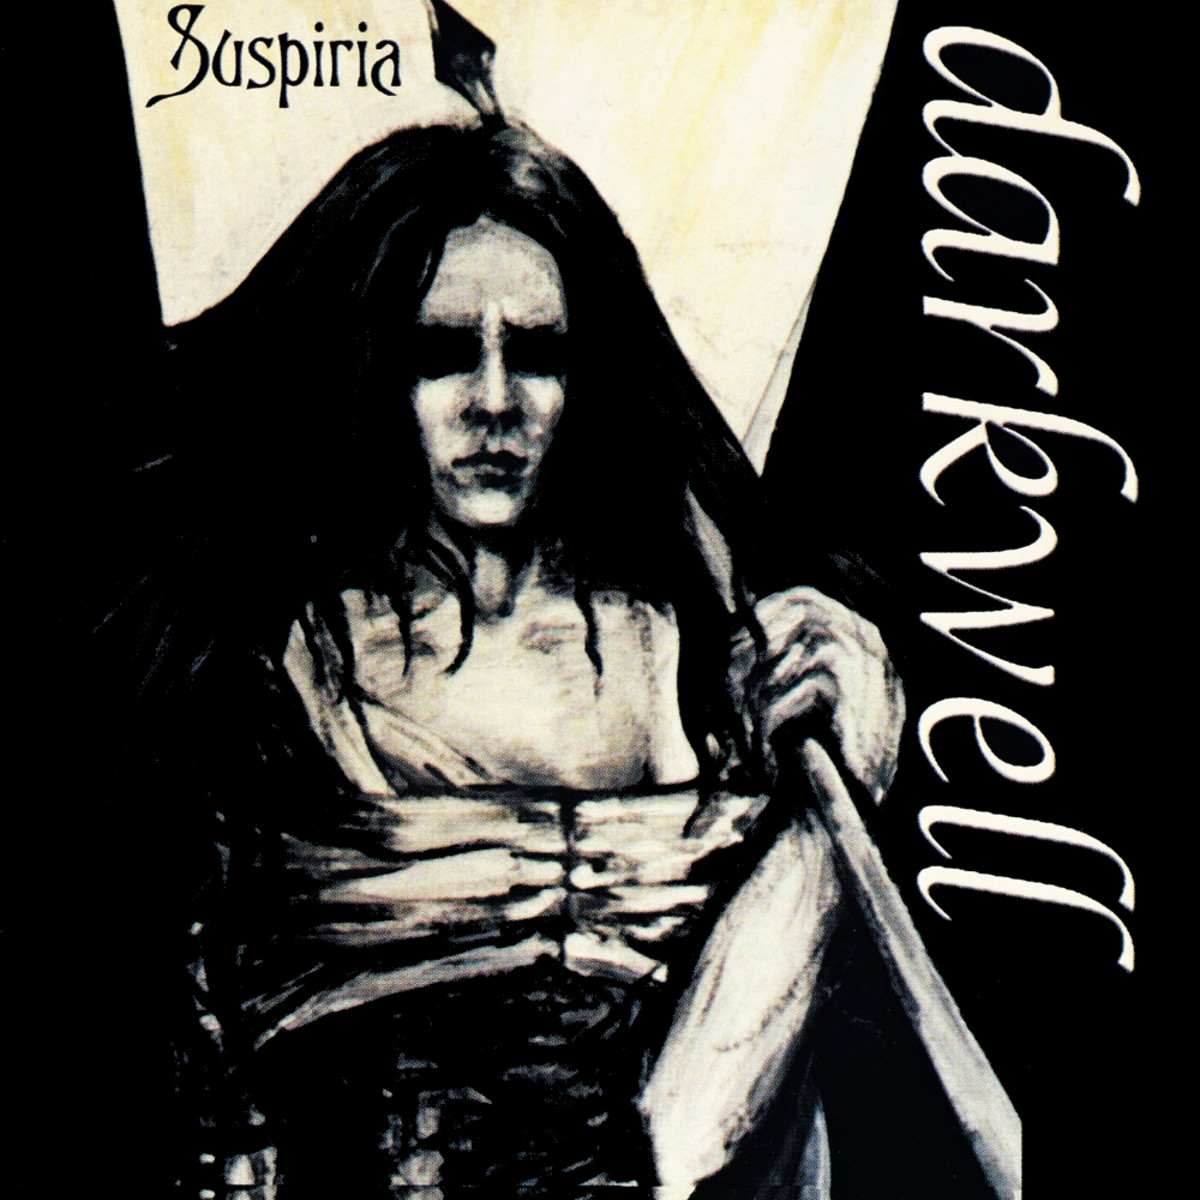 forgotten-metal-albums-suspiria-by-austrian-gothic-metal-band-darkwell